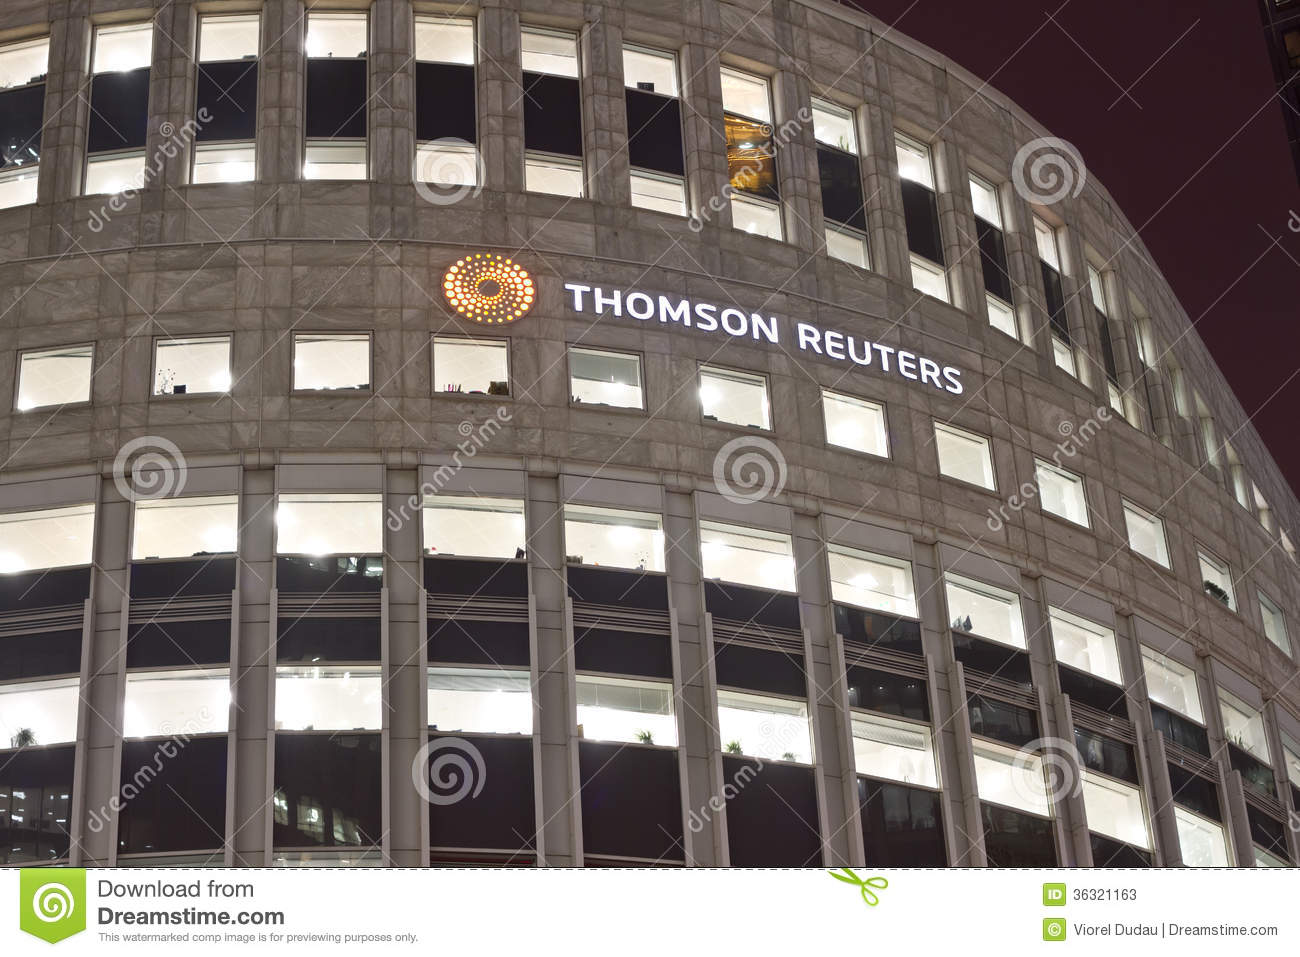 Thomson Reuters Editorial Stock Photo - Image: 36321163